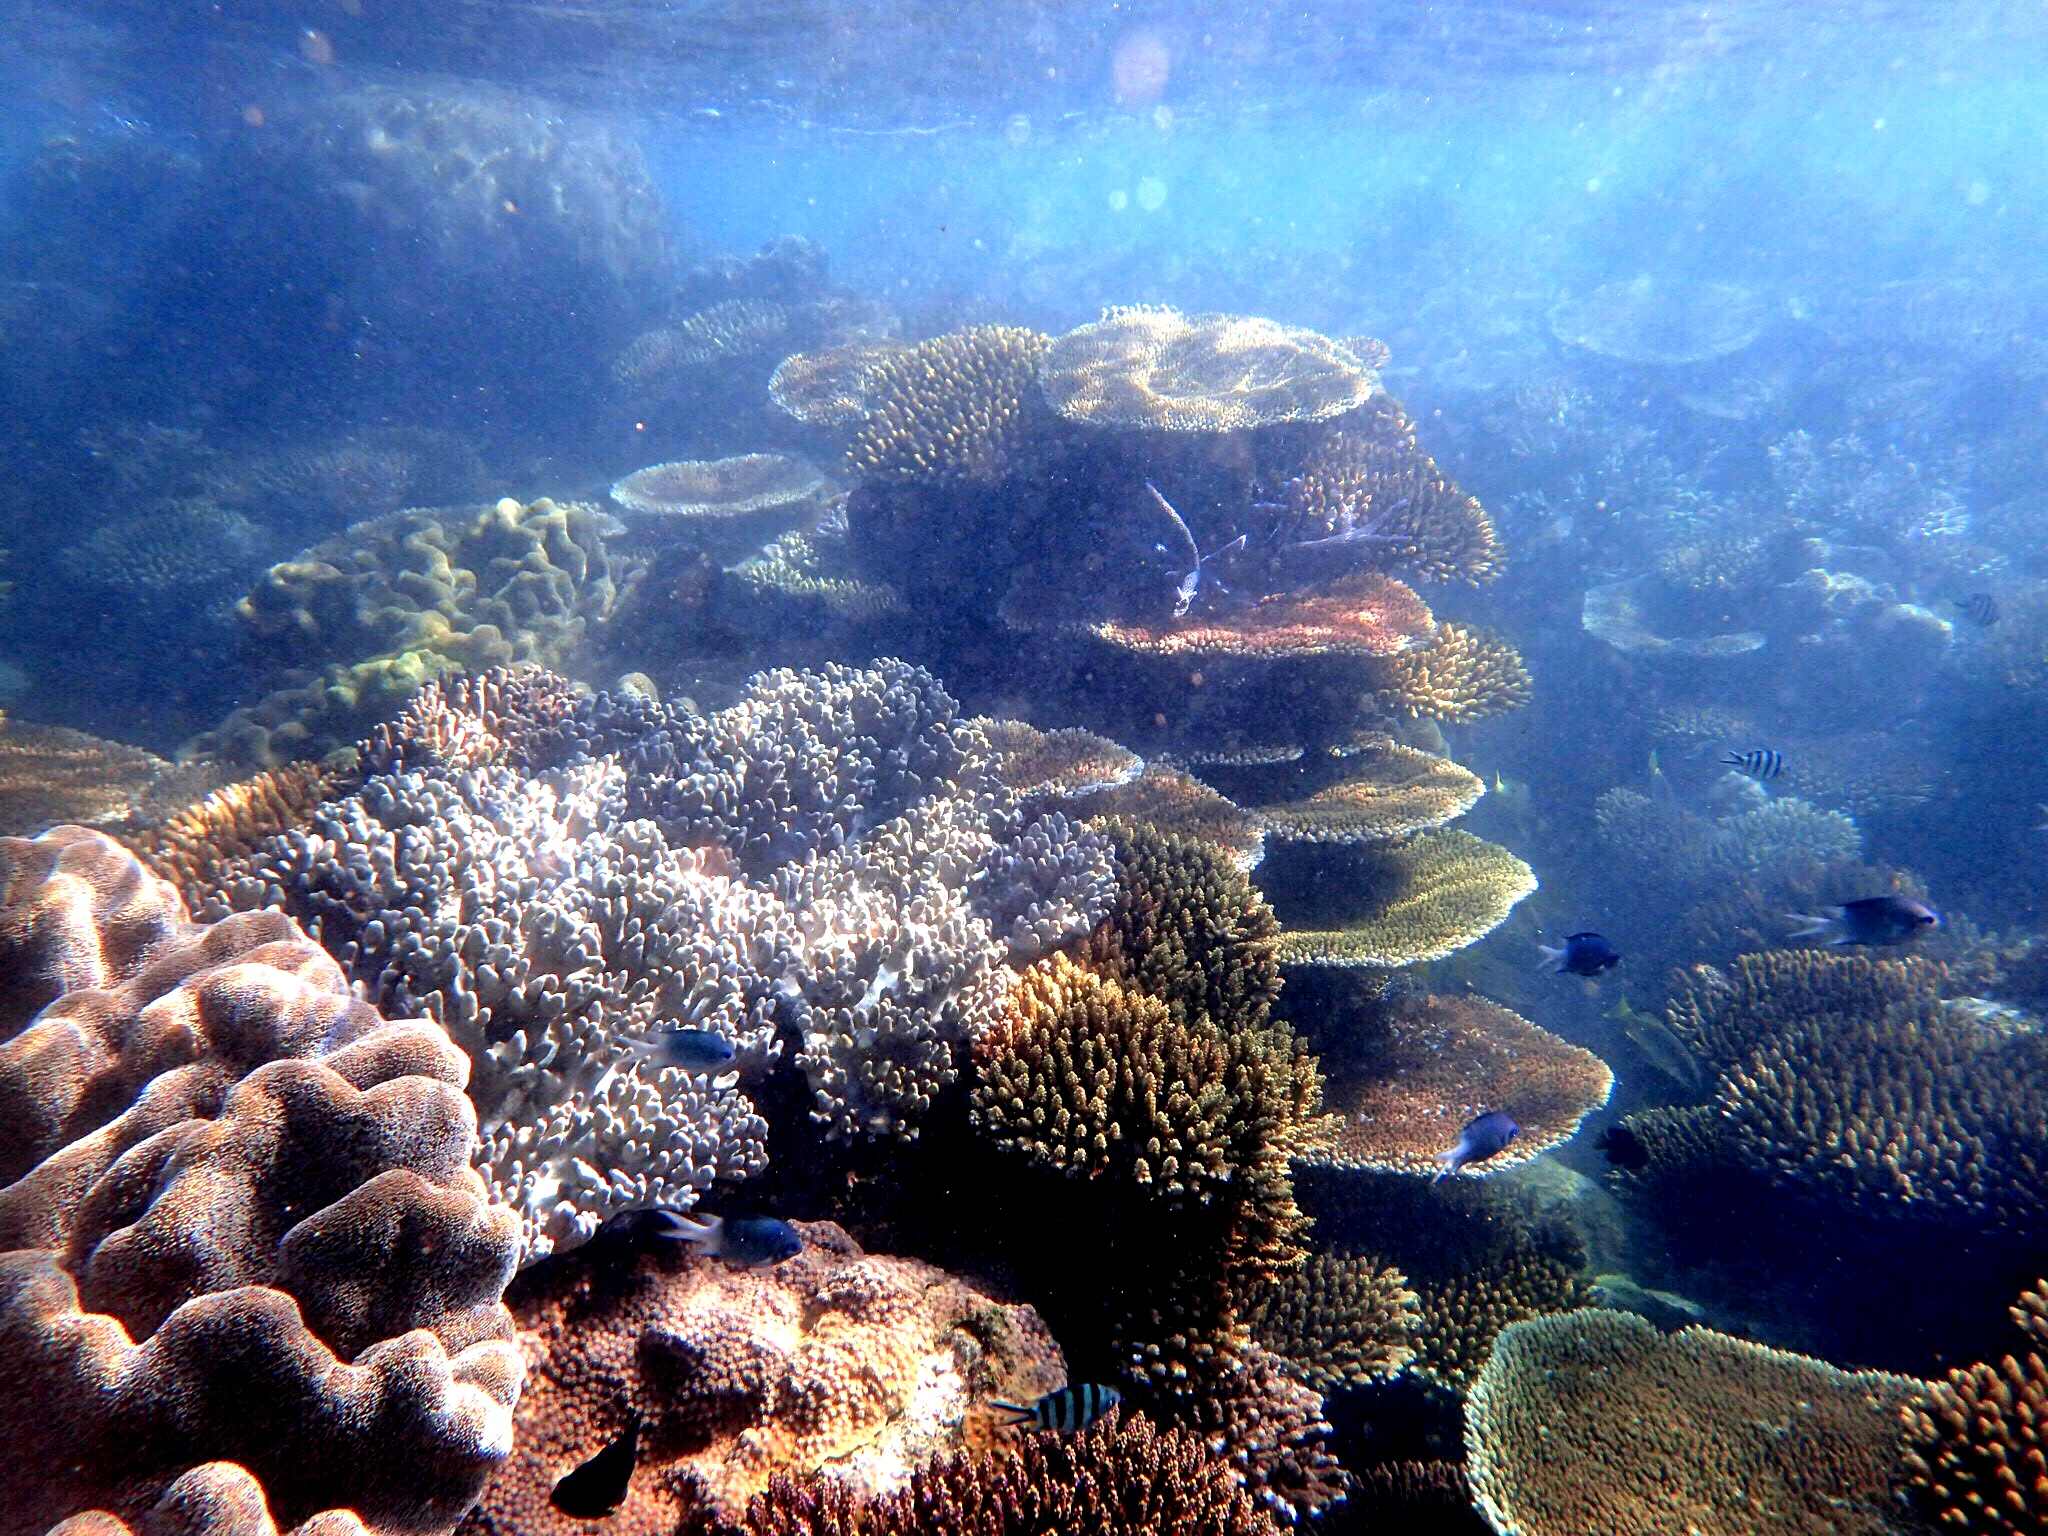 Plate coral gardens